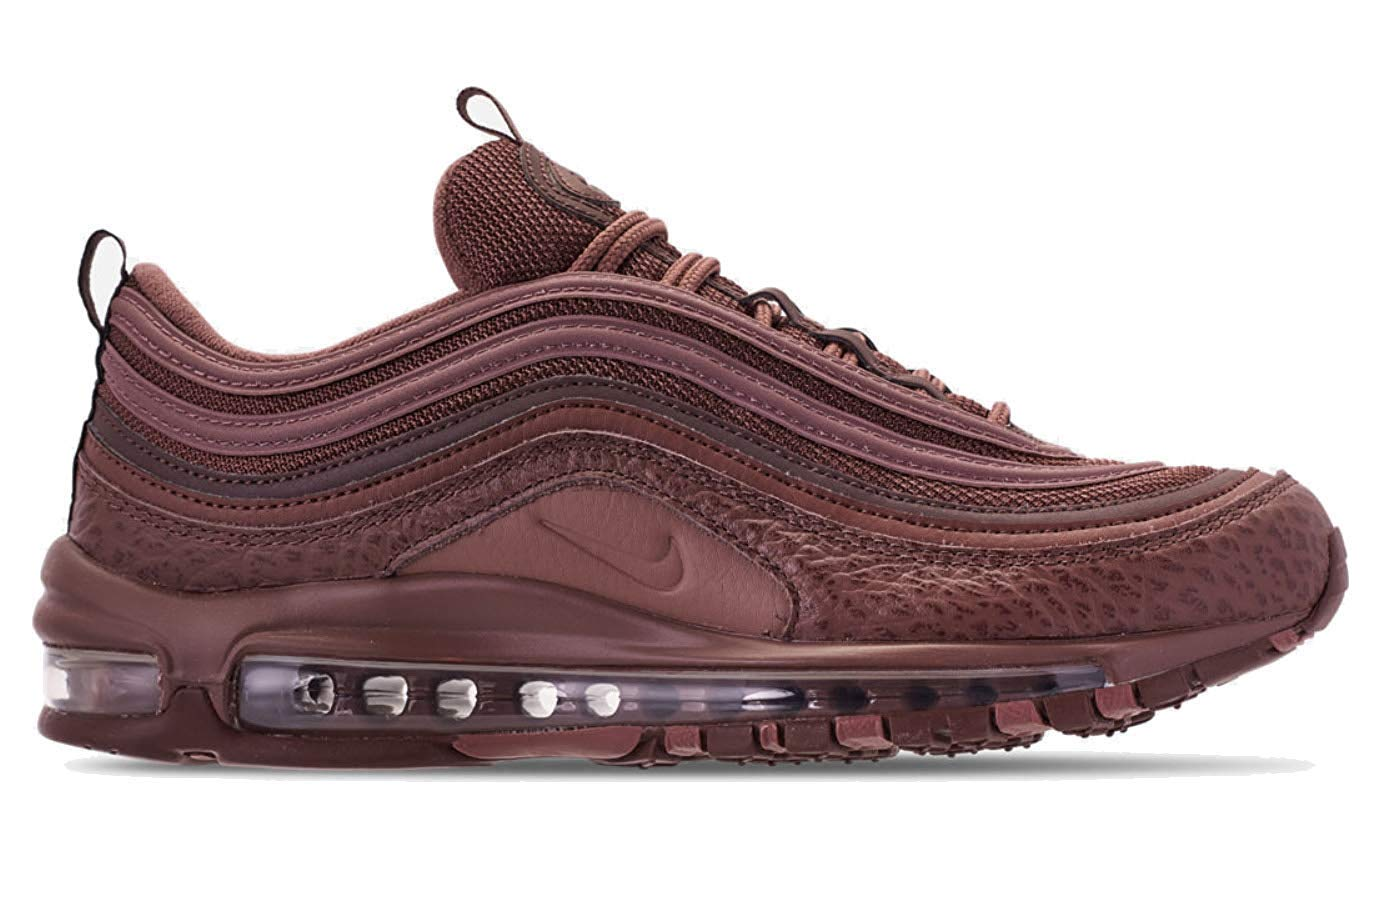 775d20e7b3 Nike Air Max 97 Size 11 Top Deals & Lowest Price | SuperOffers.com